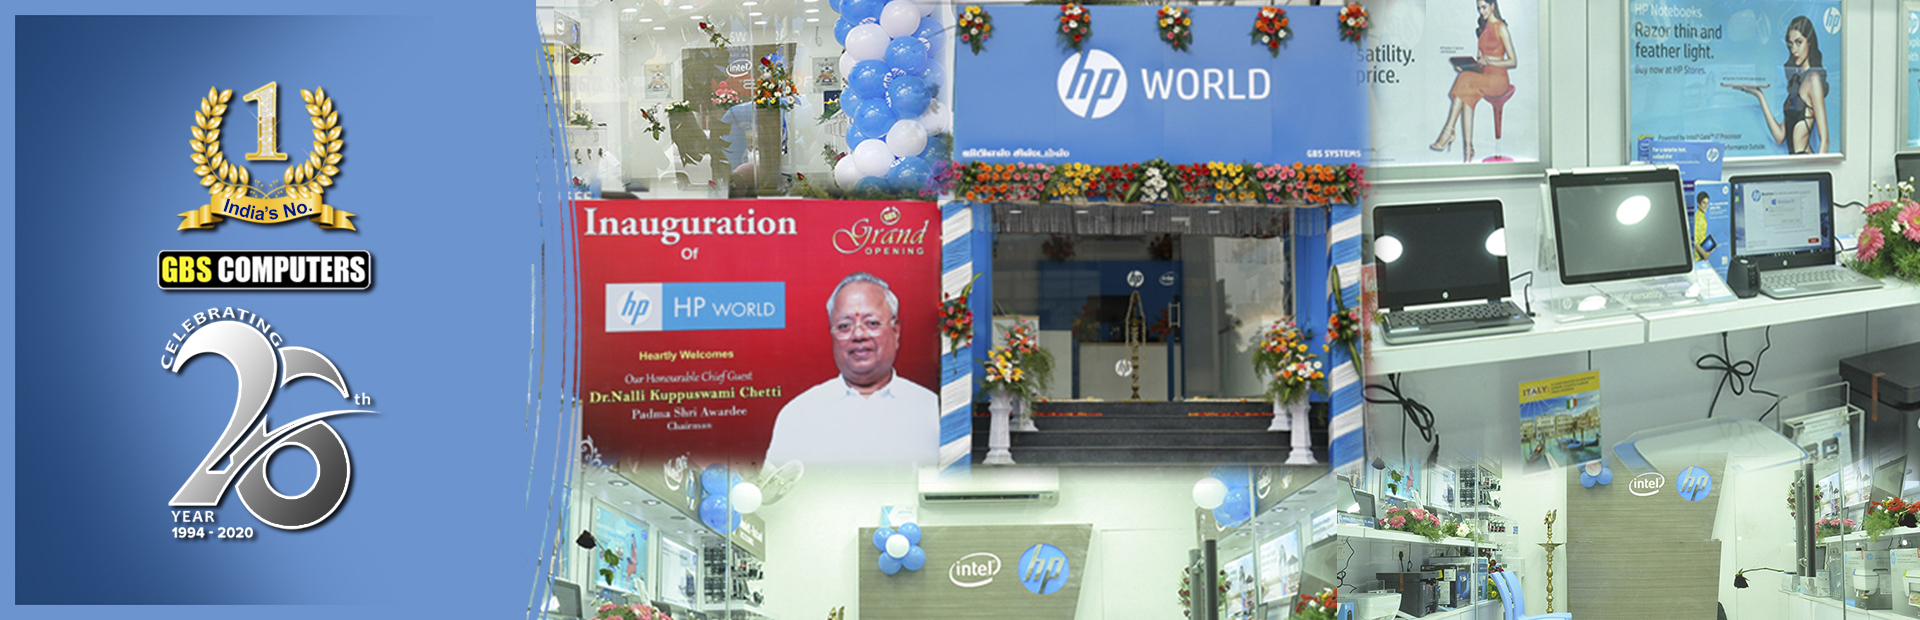 hp showroom gbs